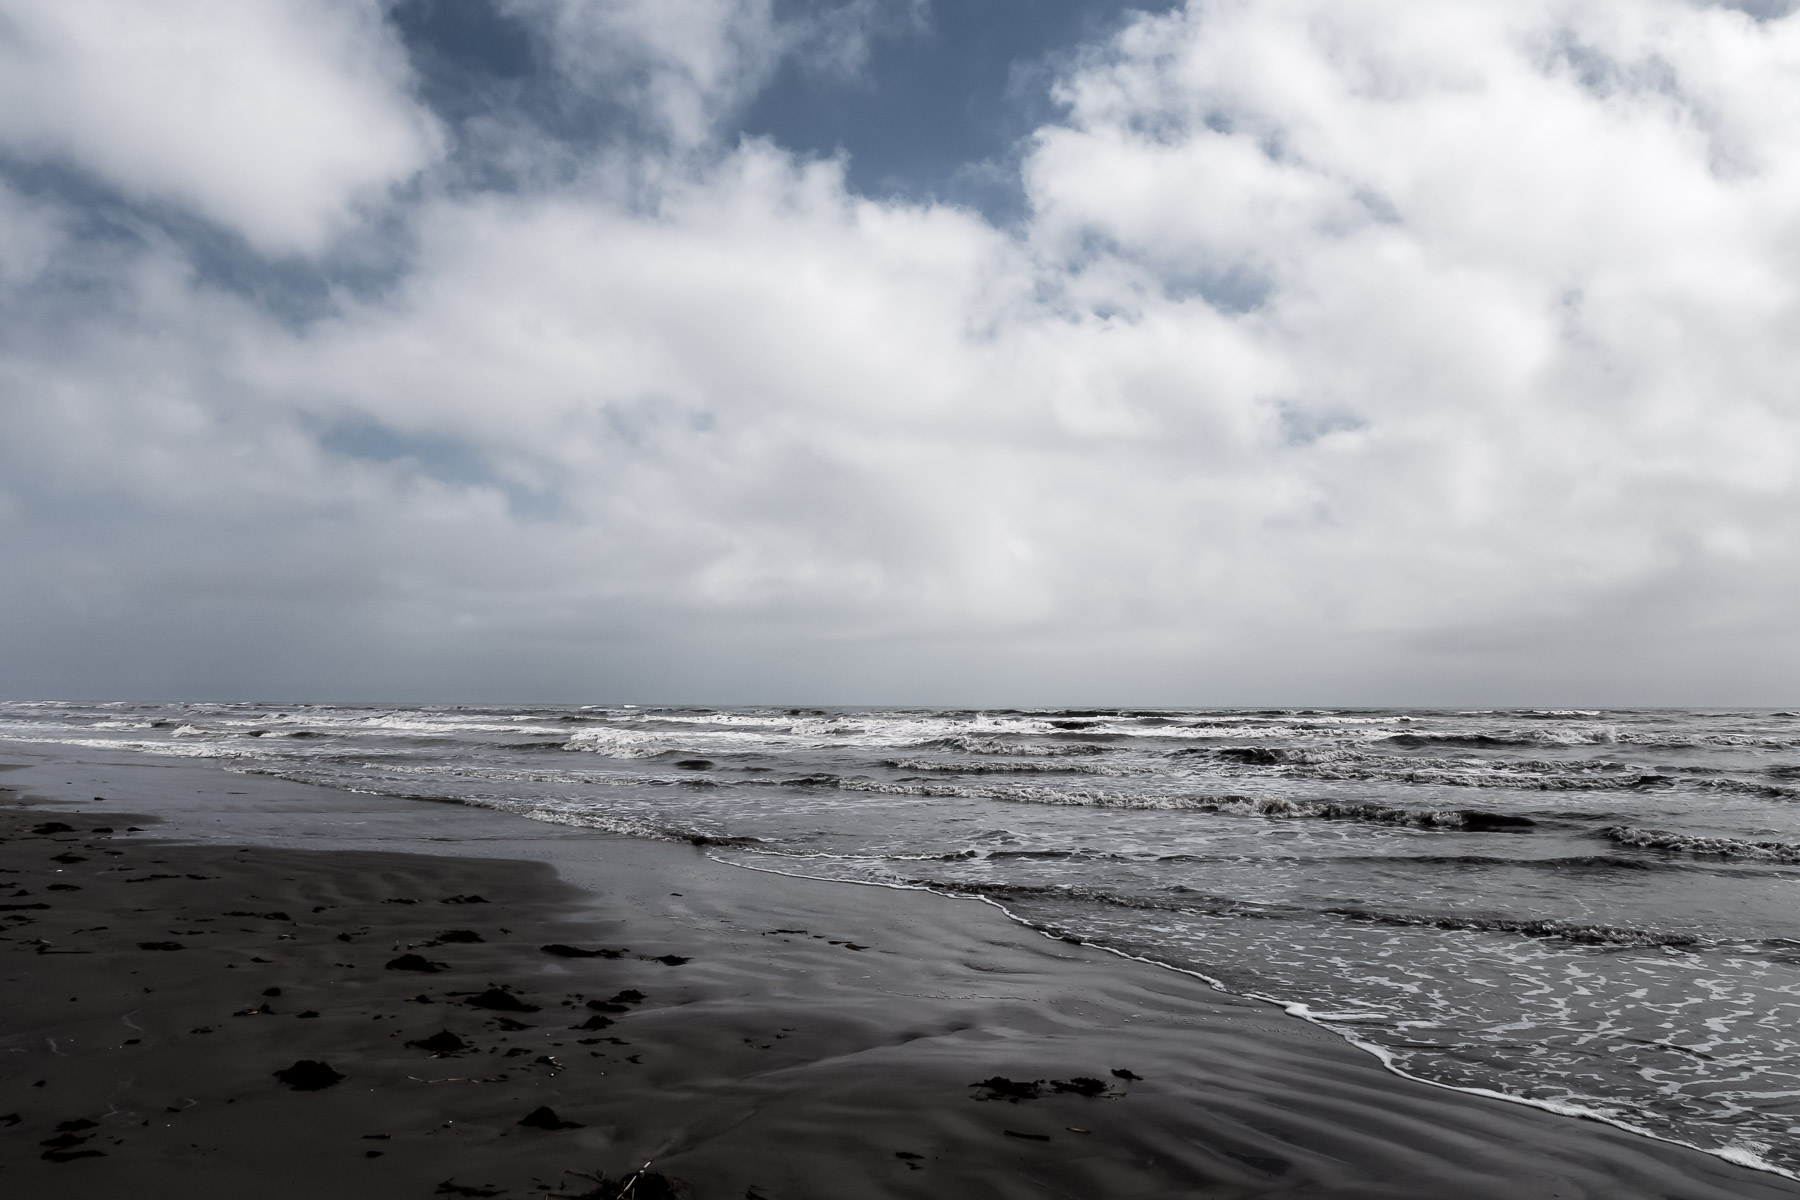 A lonely Galveston Island, Texas, beach on a cold, cloudy day.